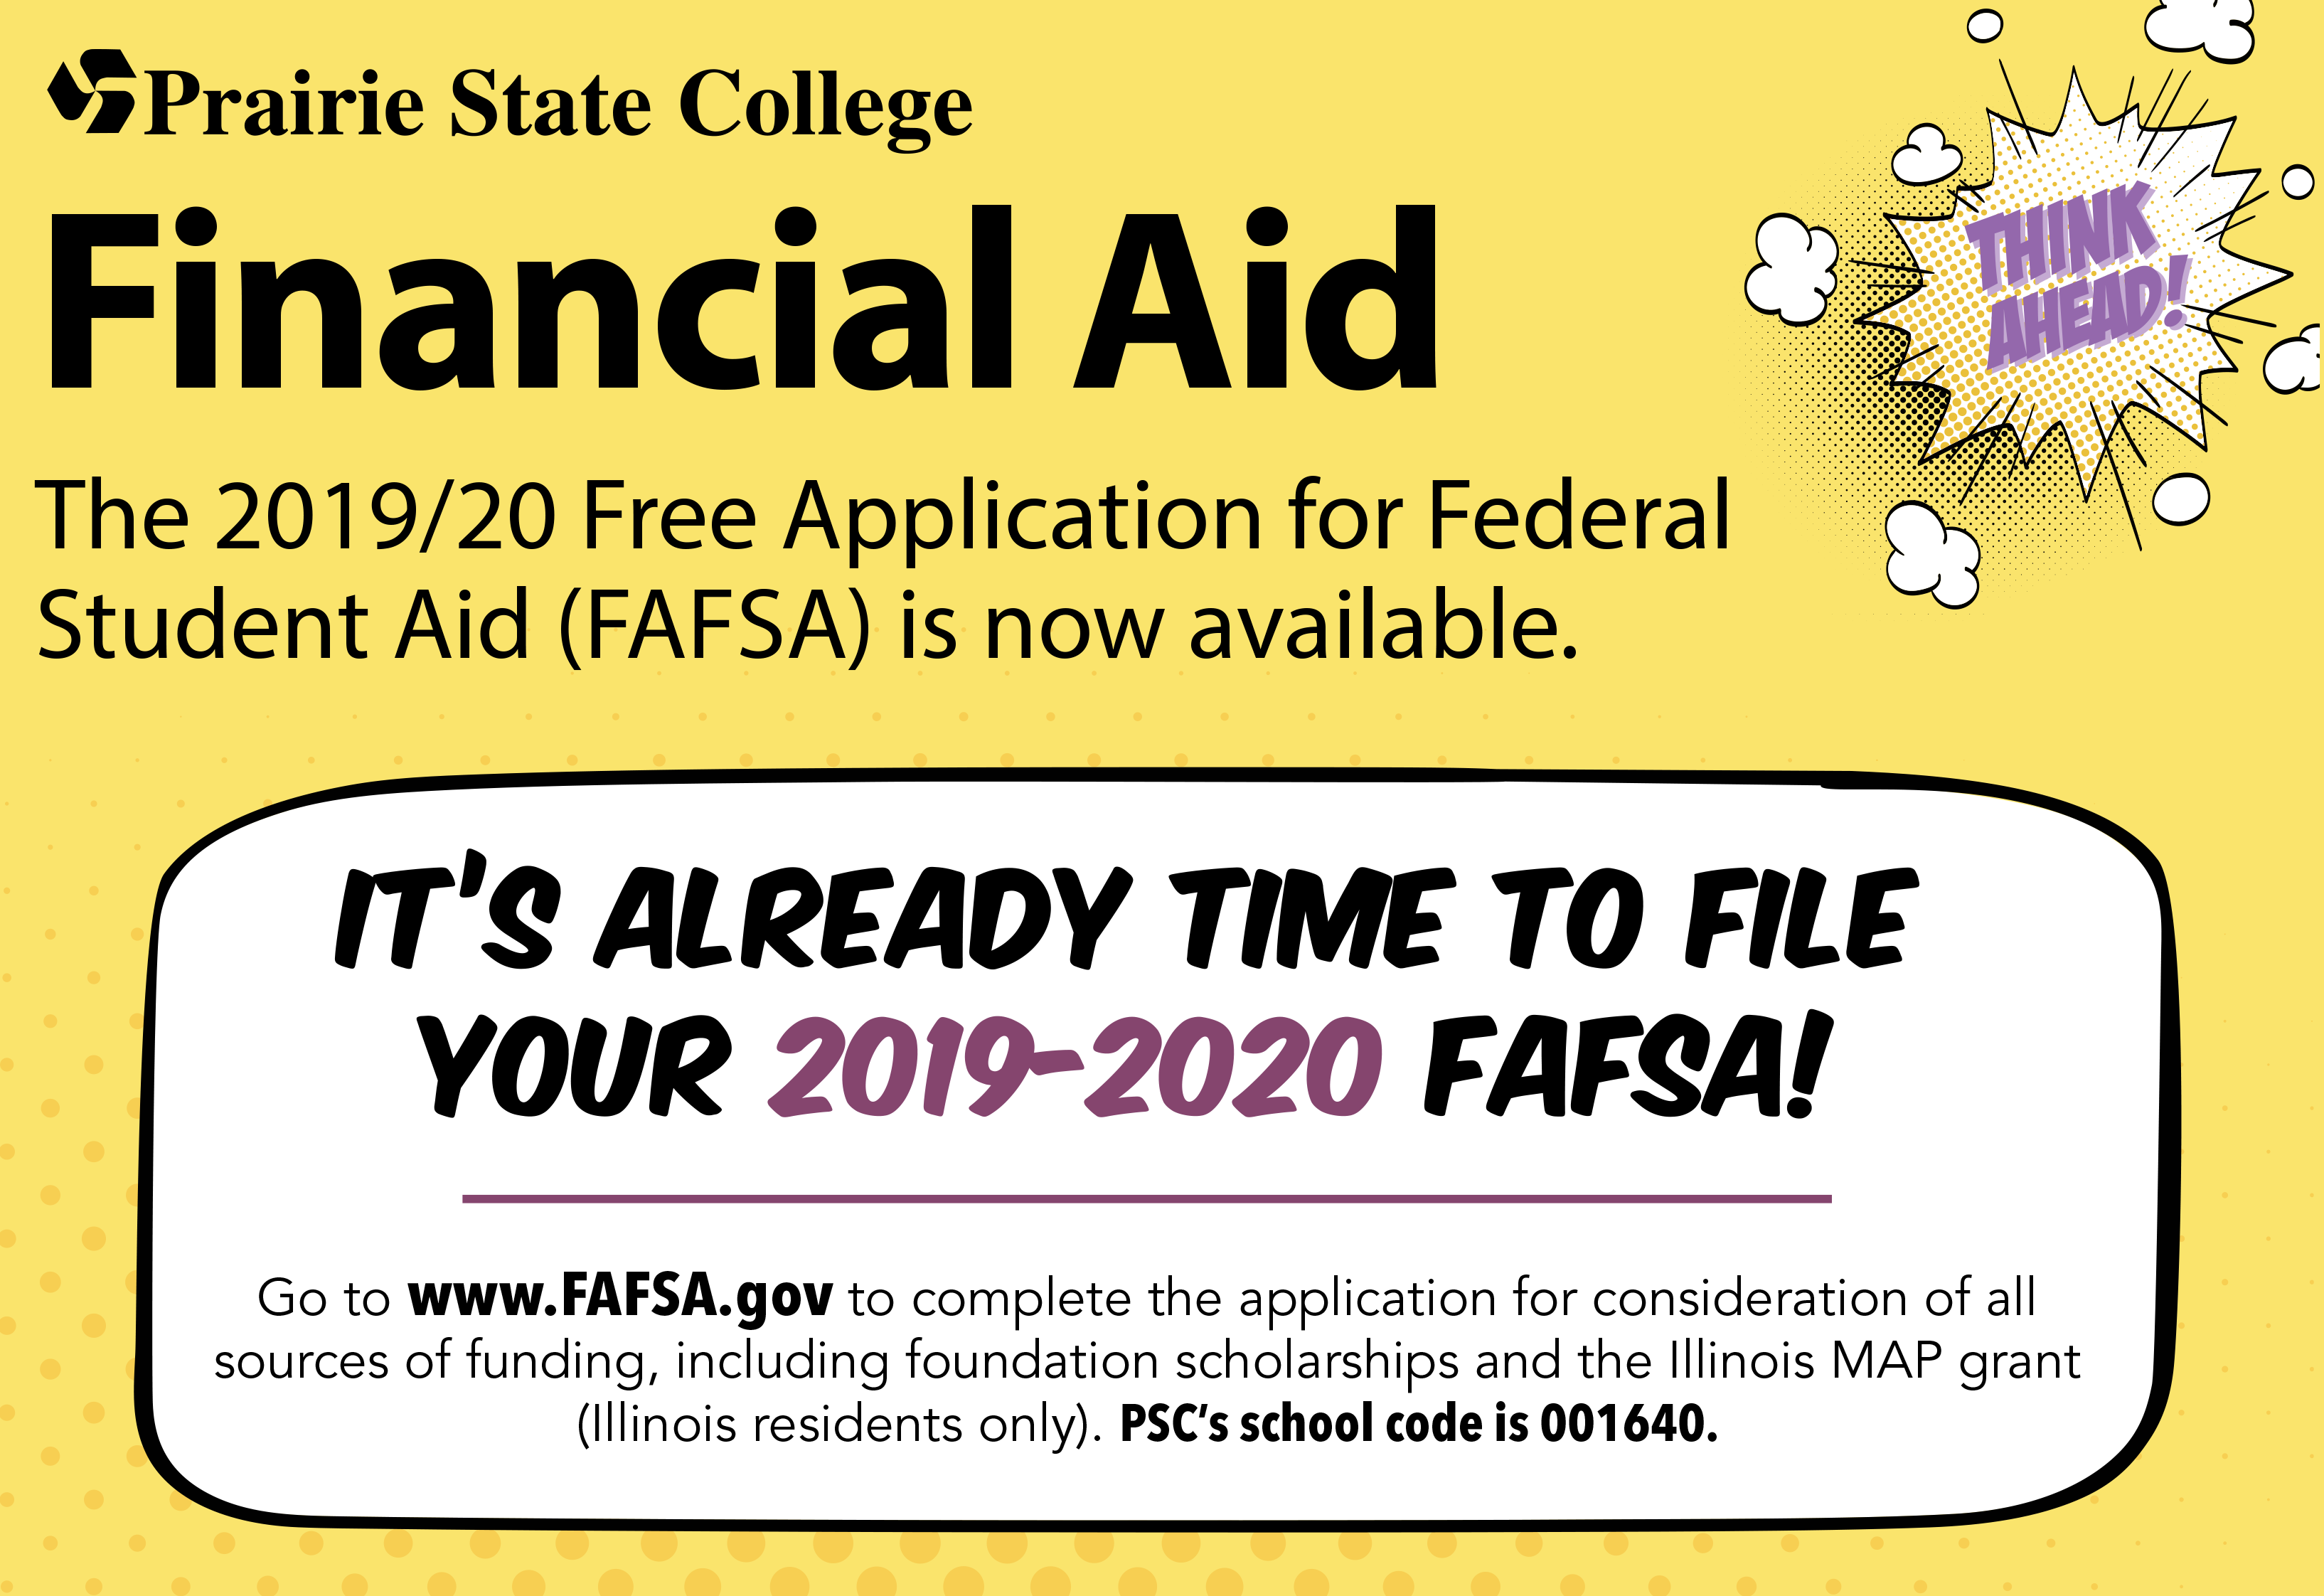 Graphic depicting early FAFSA filing